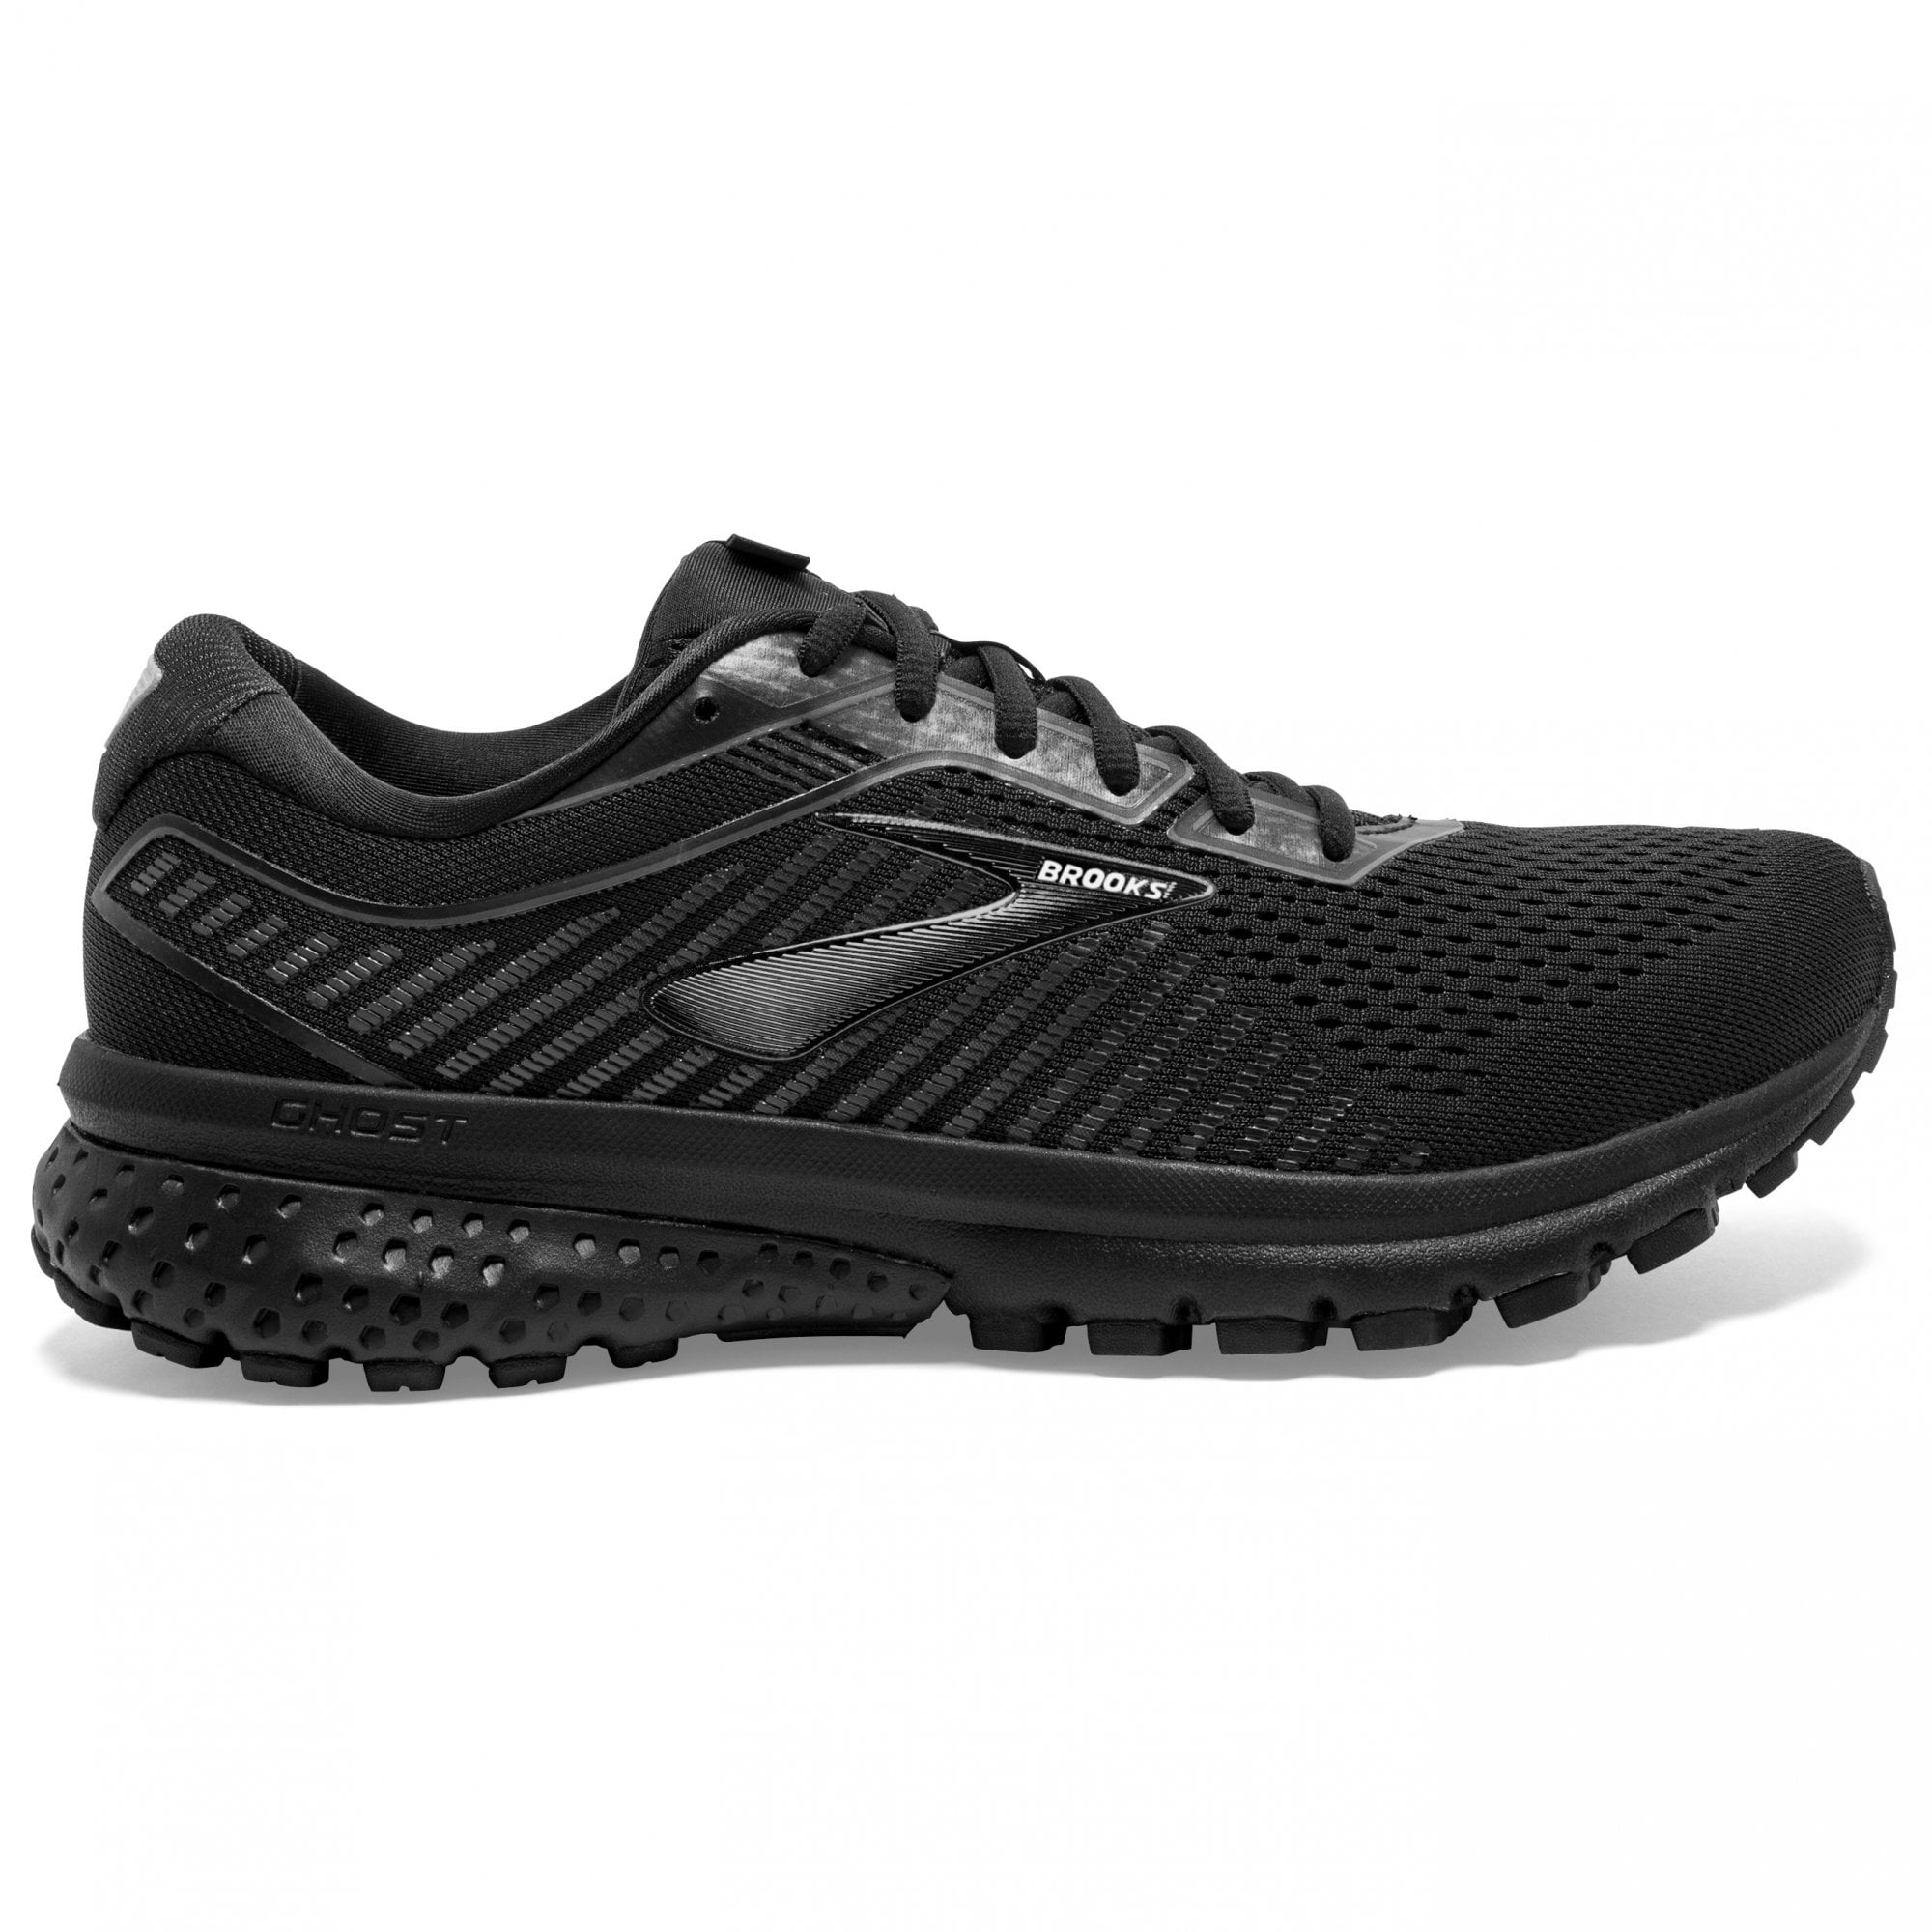 Ghost 12 Black Running Shoes (Wide Fit